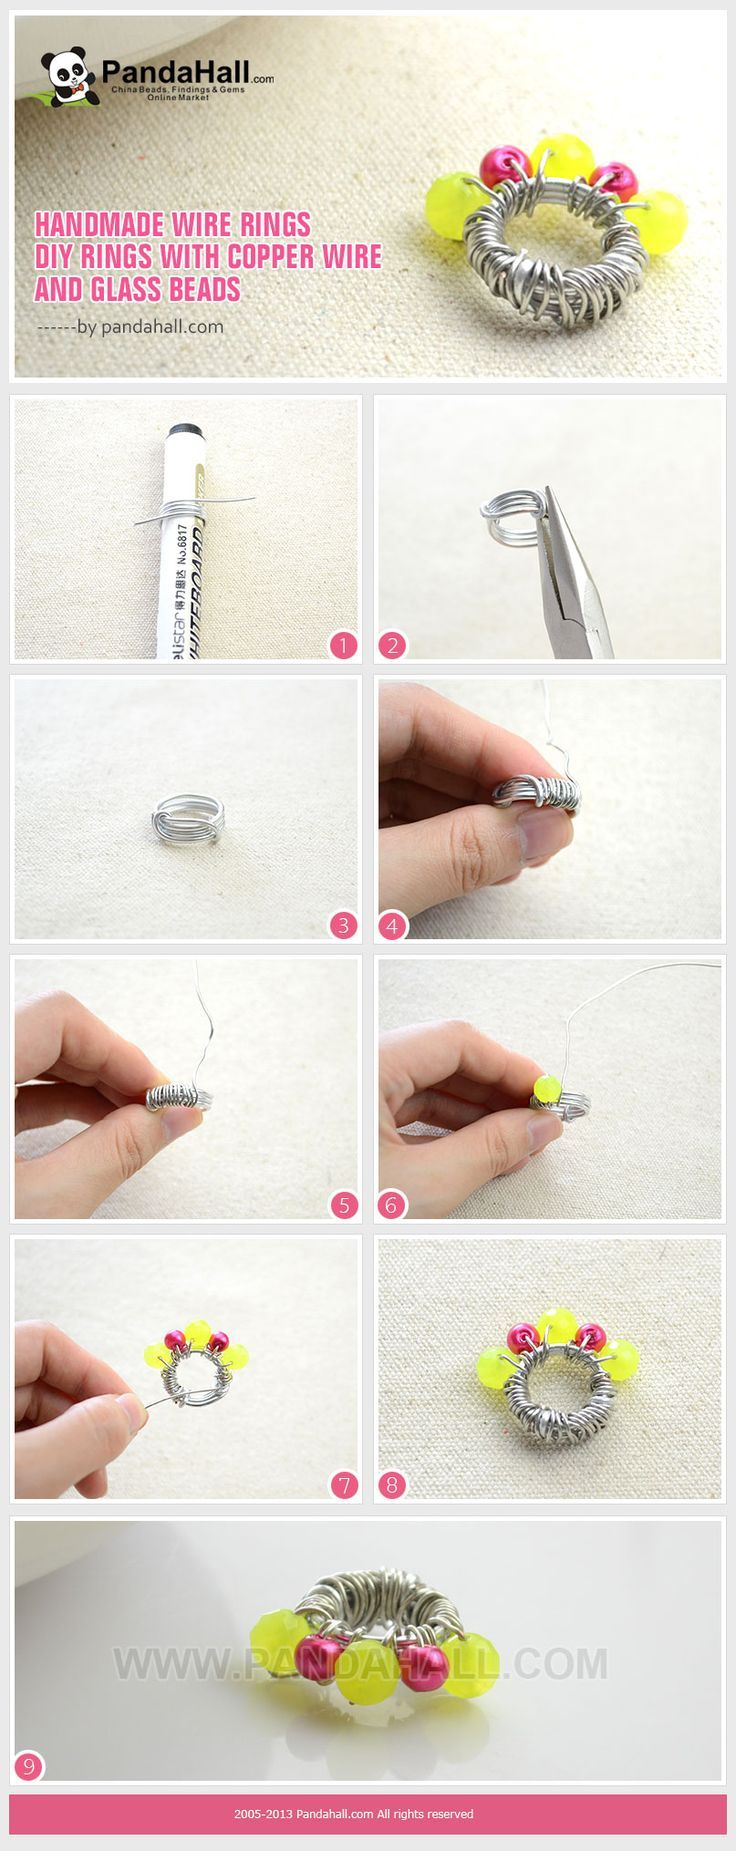 127 best DIY Ring images on Pinterest | Rings, Diy rings and ...